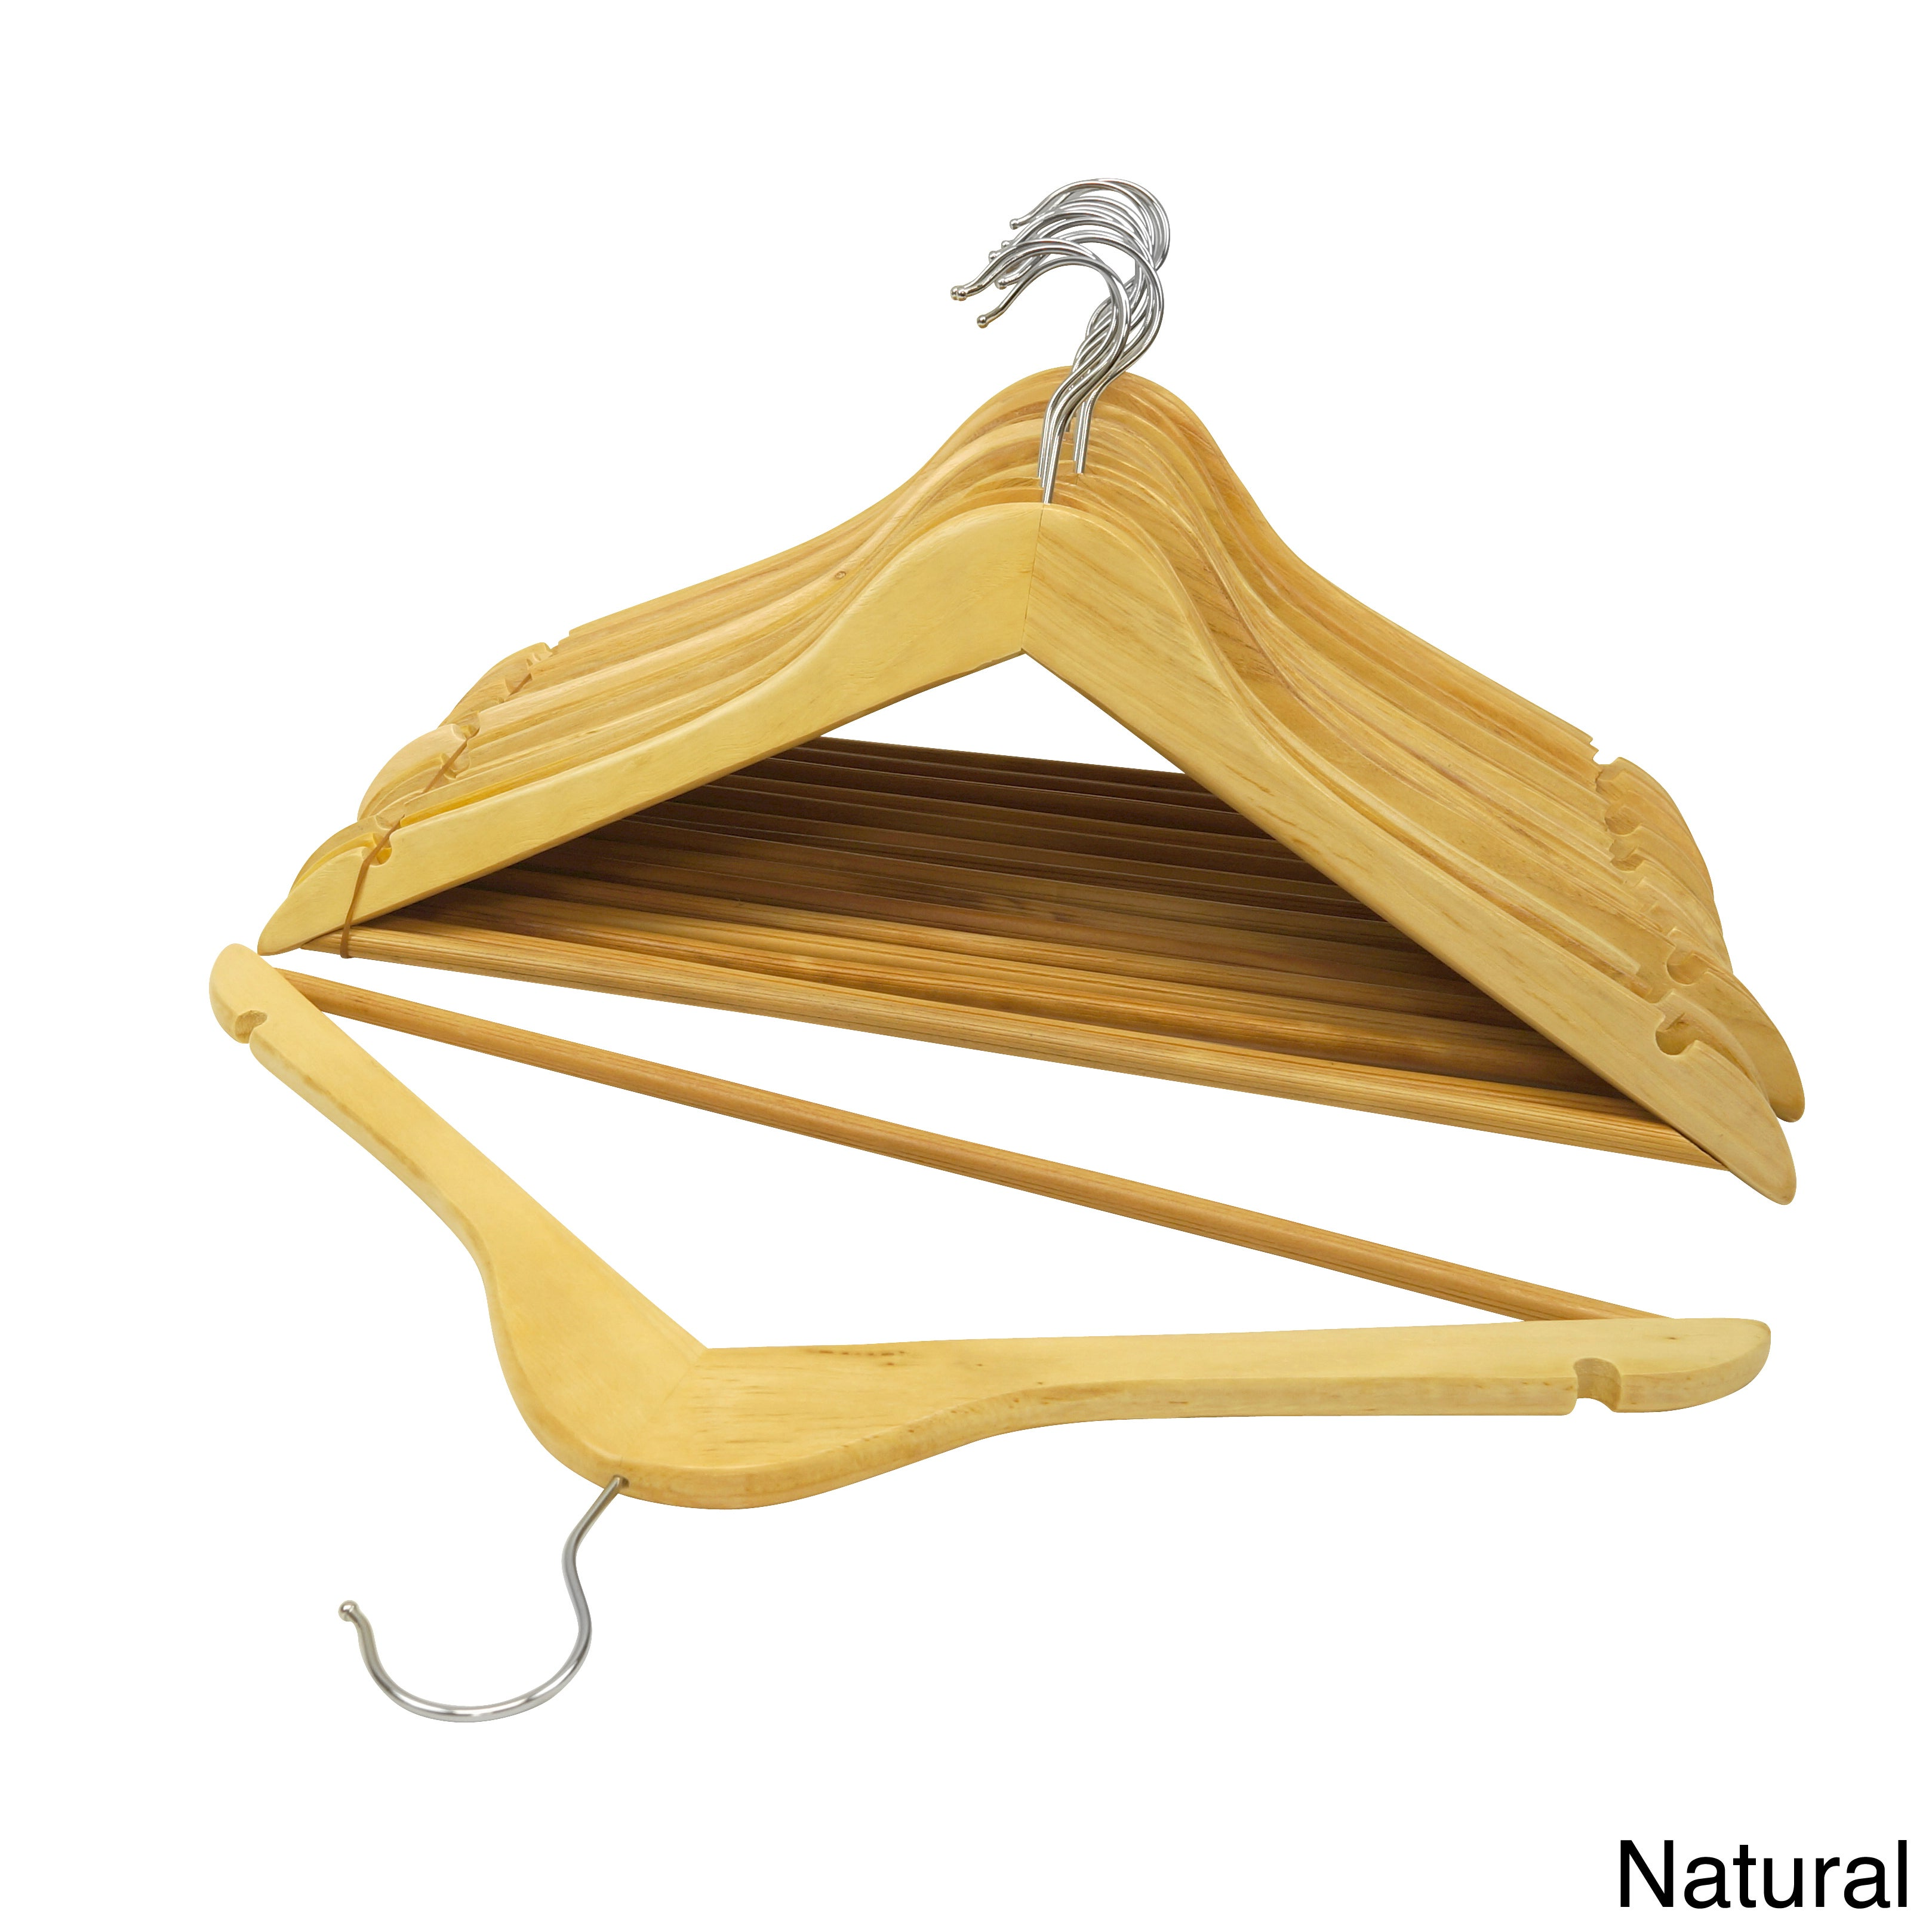 Florida Brand Wood Suit Hangers (Set of 48) - Free Shipping Today -  Overstock.com - 15319290